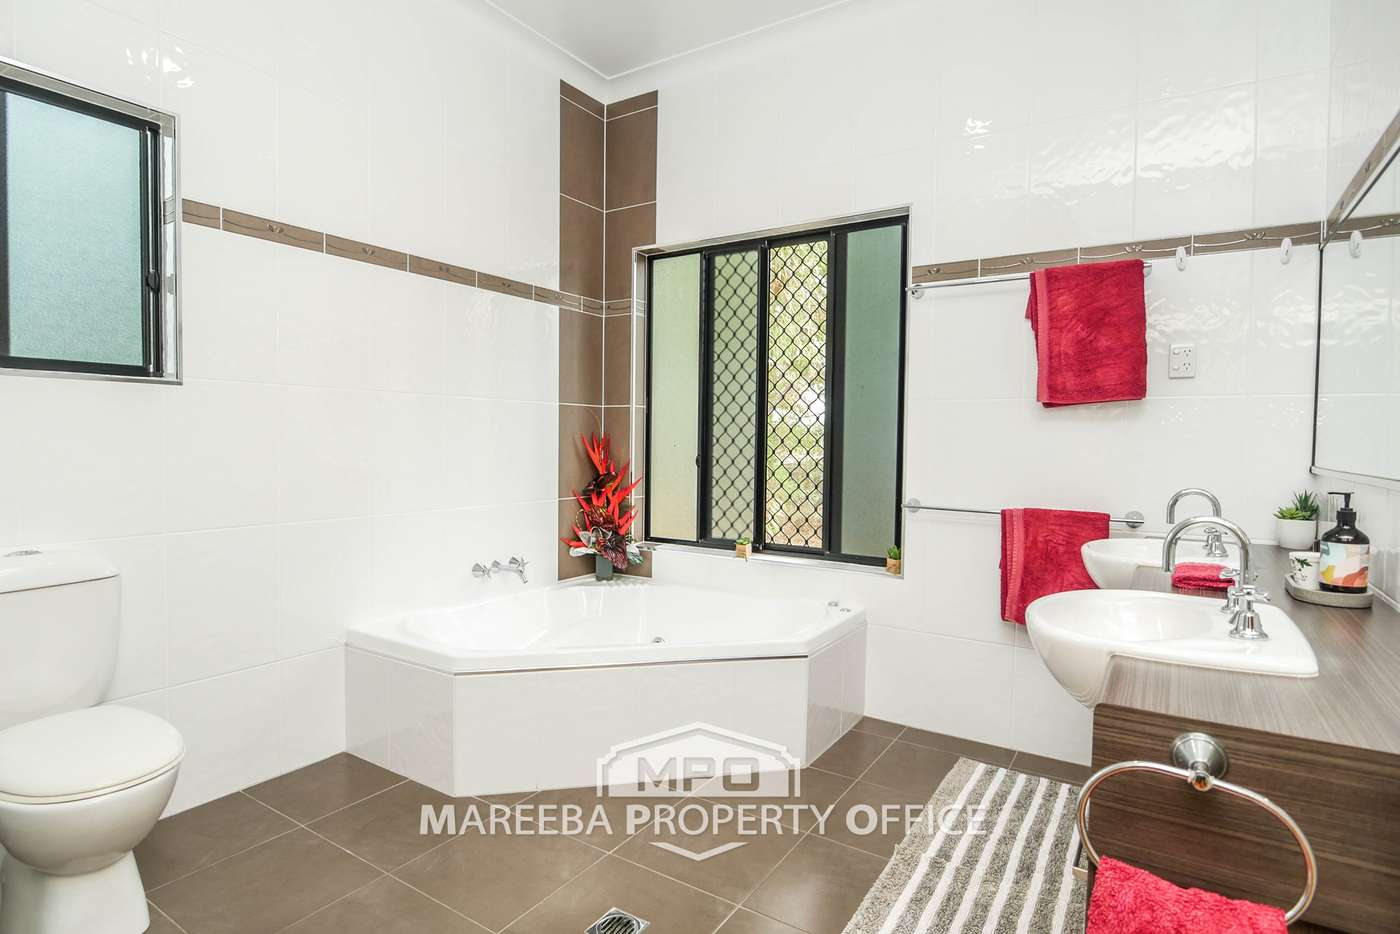 Seventh view of Homely house listing, 16 Maria Close, Mareeba QLD 4880